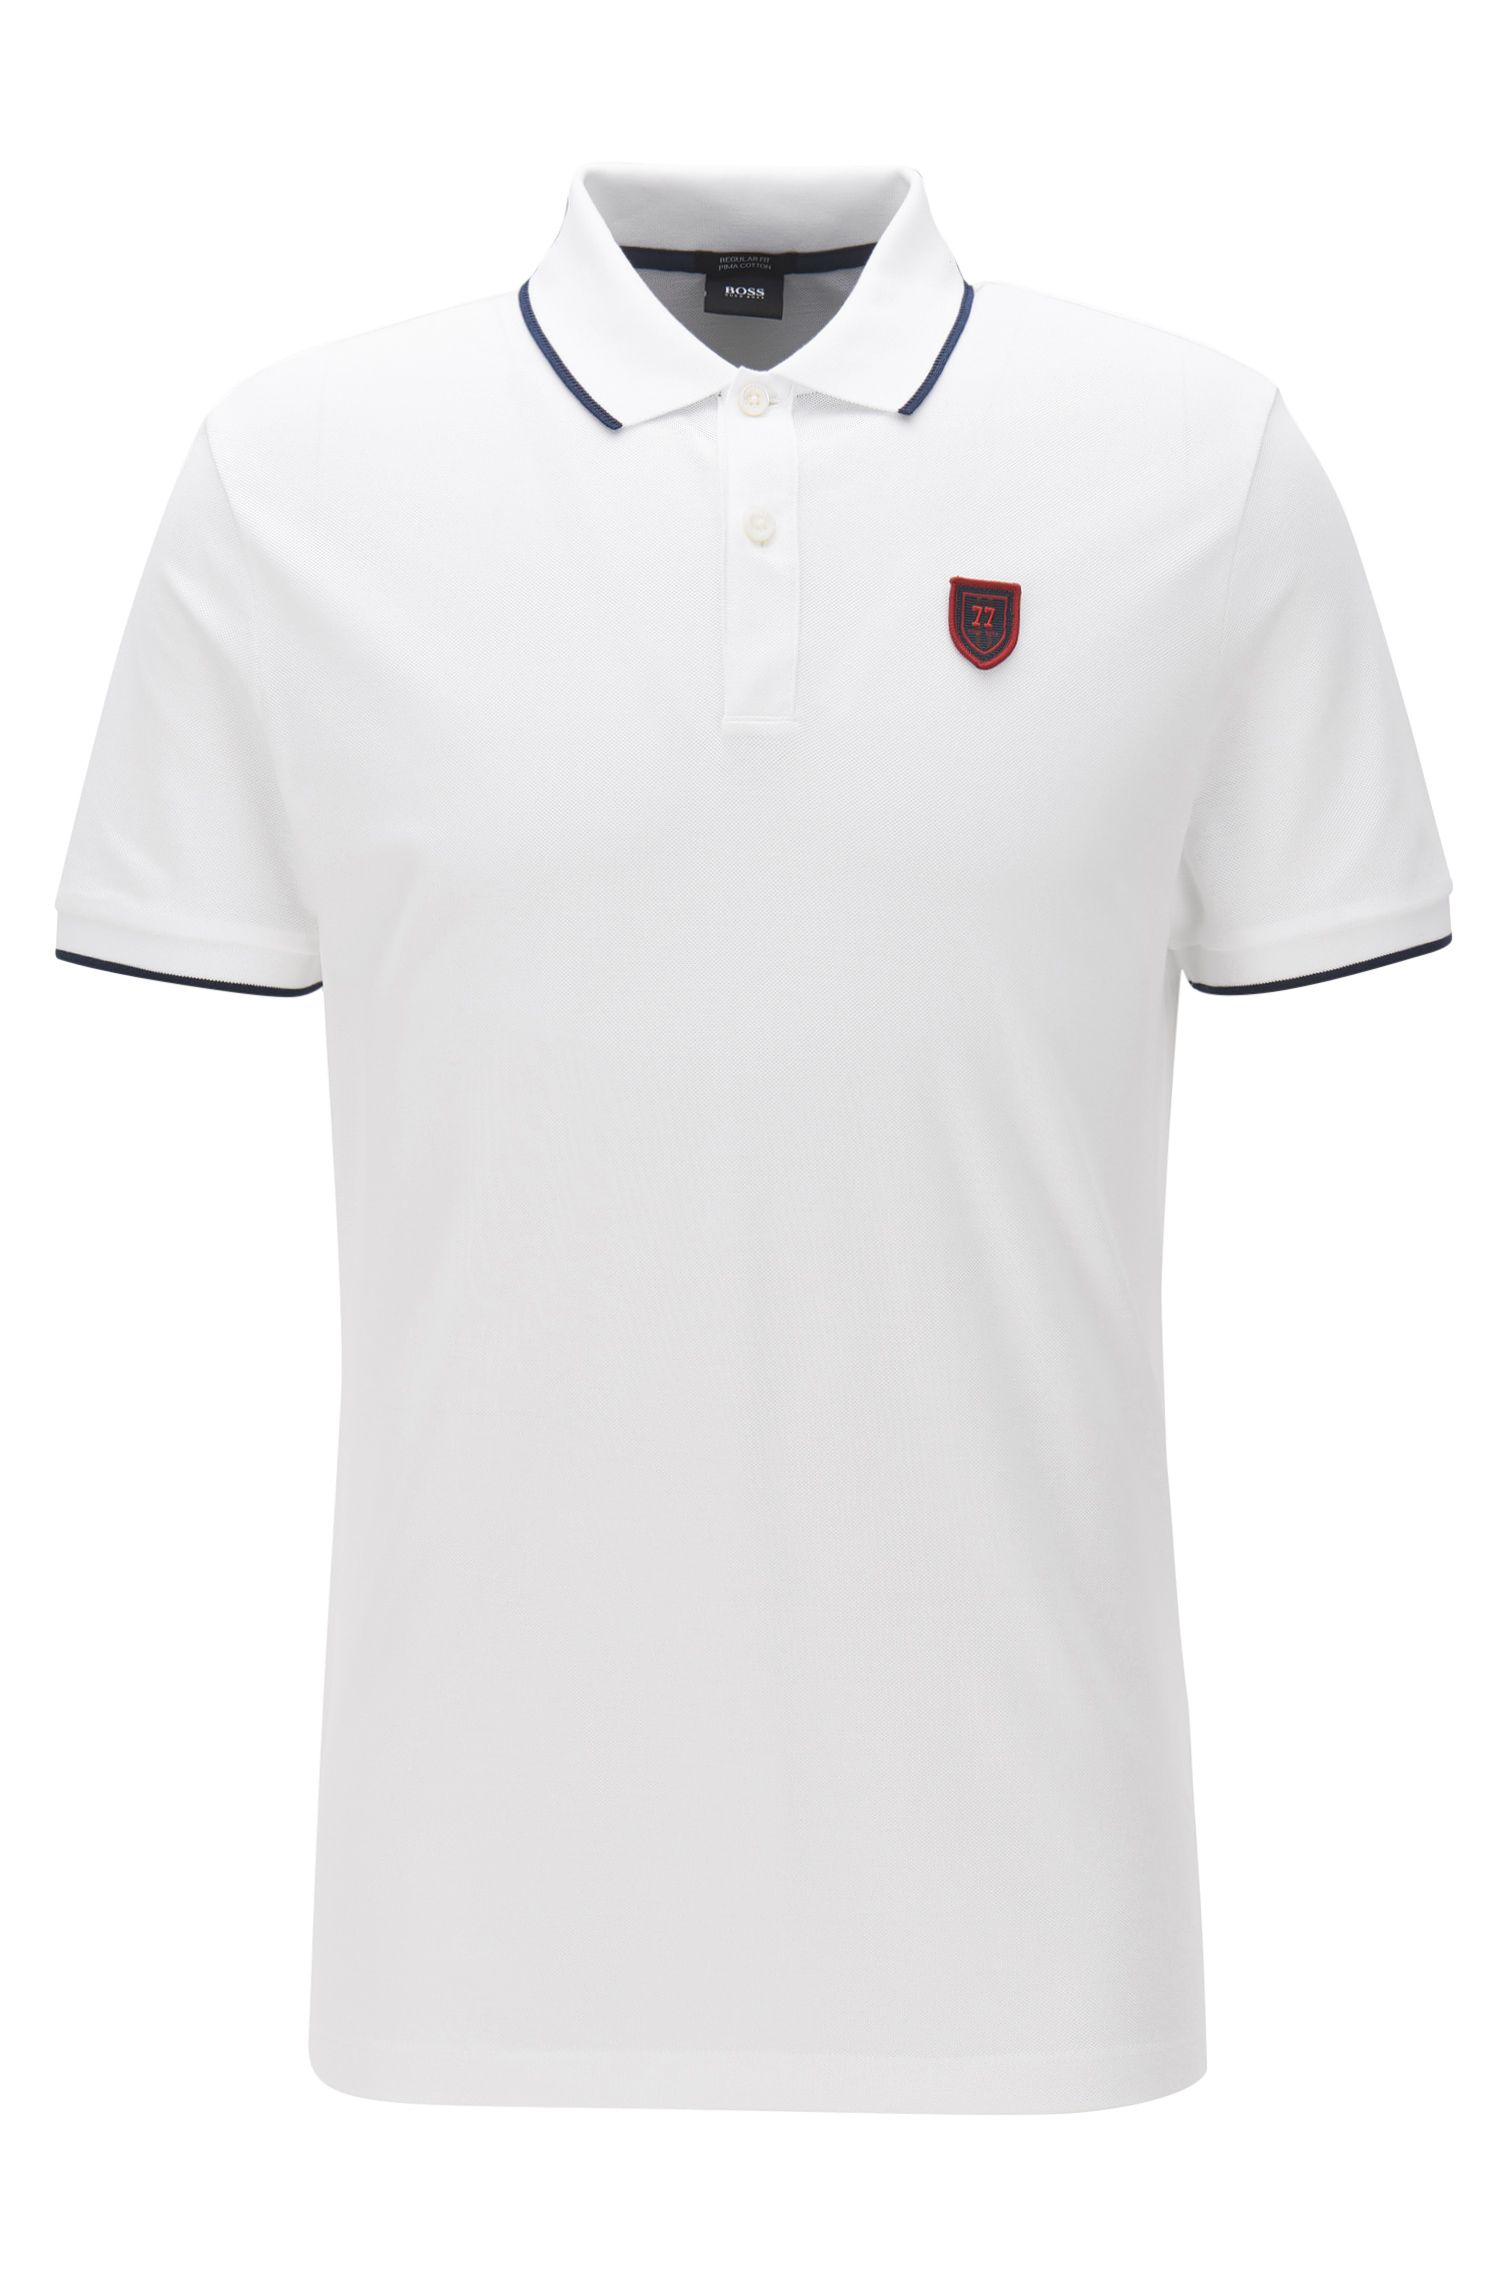 Regular-fit cotton polo shirt with seasonal BOSS badge